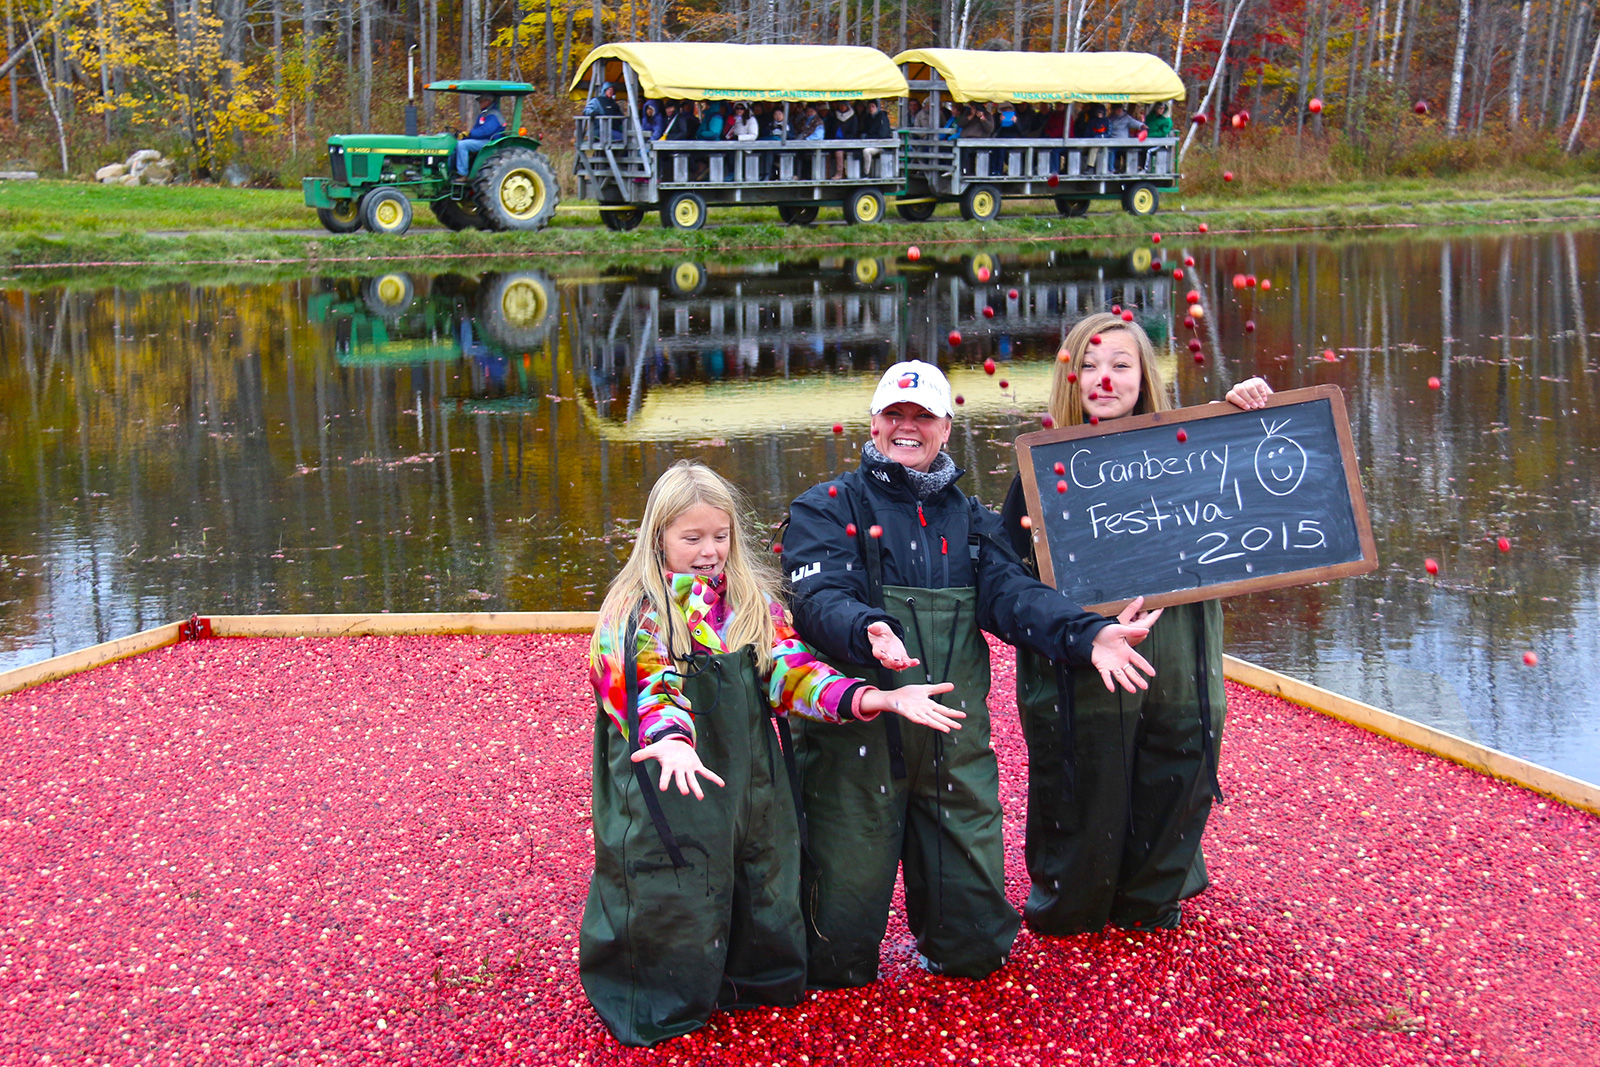 family tossing cranberries standing in floating cranberries with wagon in background